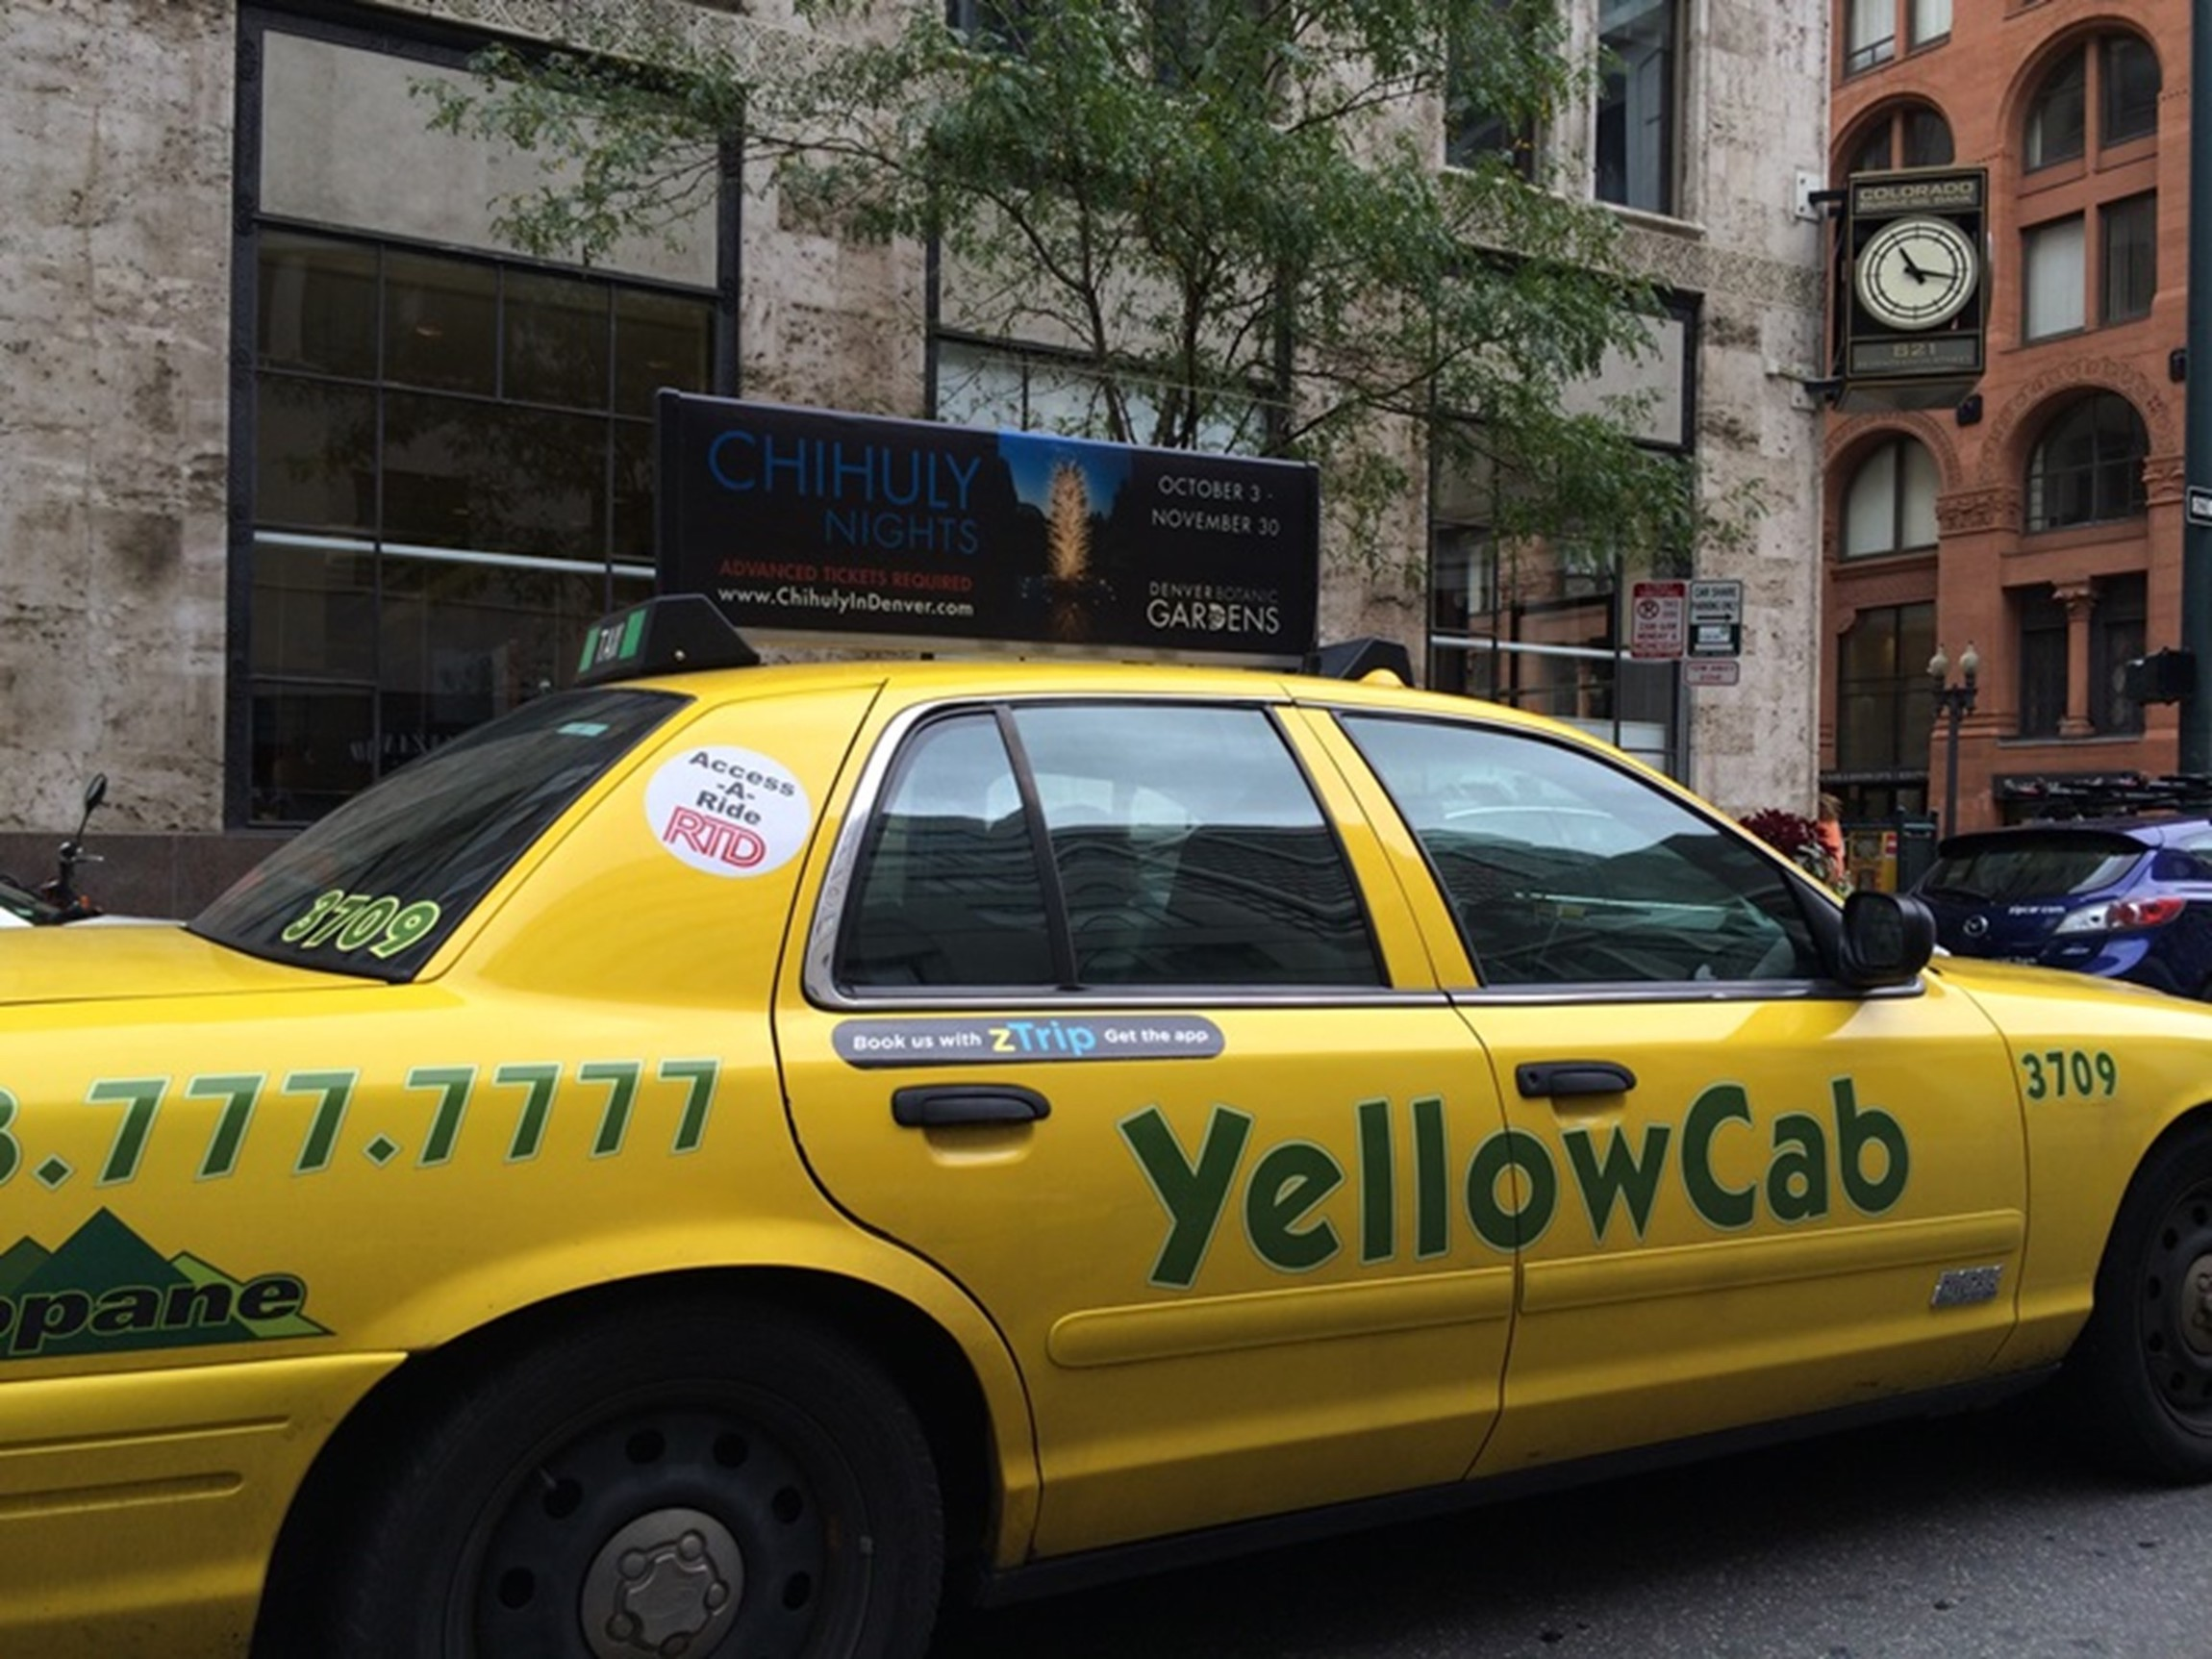 Elegant BENEFITS OF TAXI ADS: